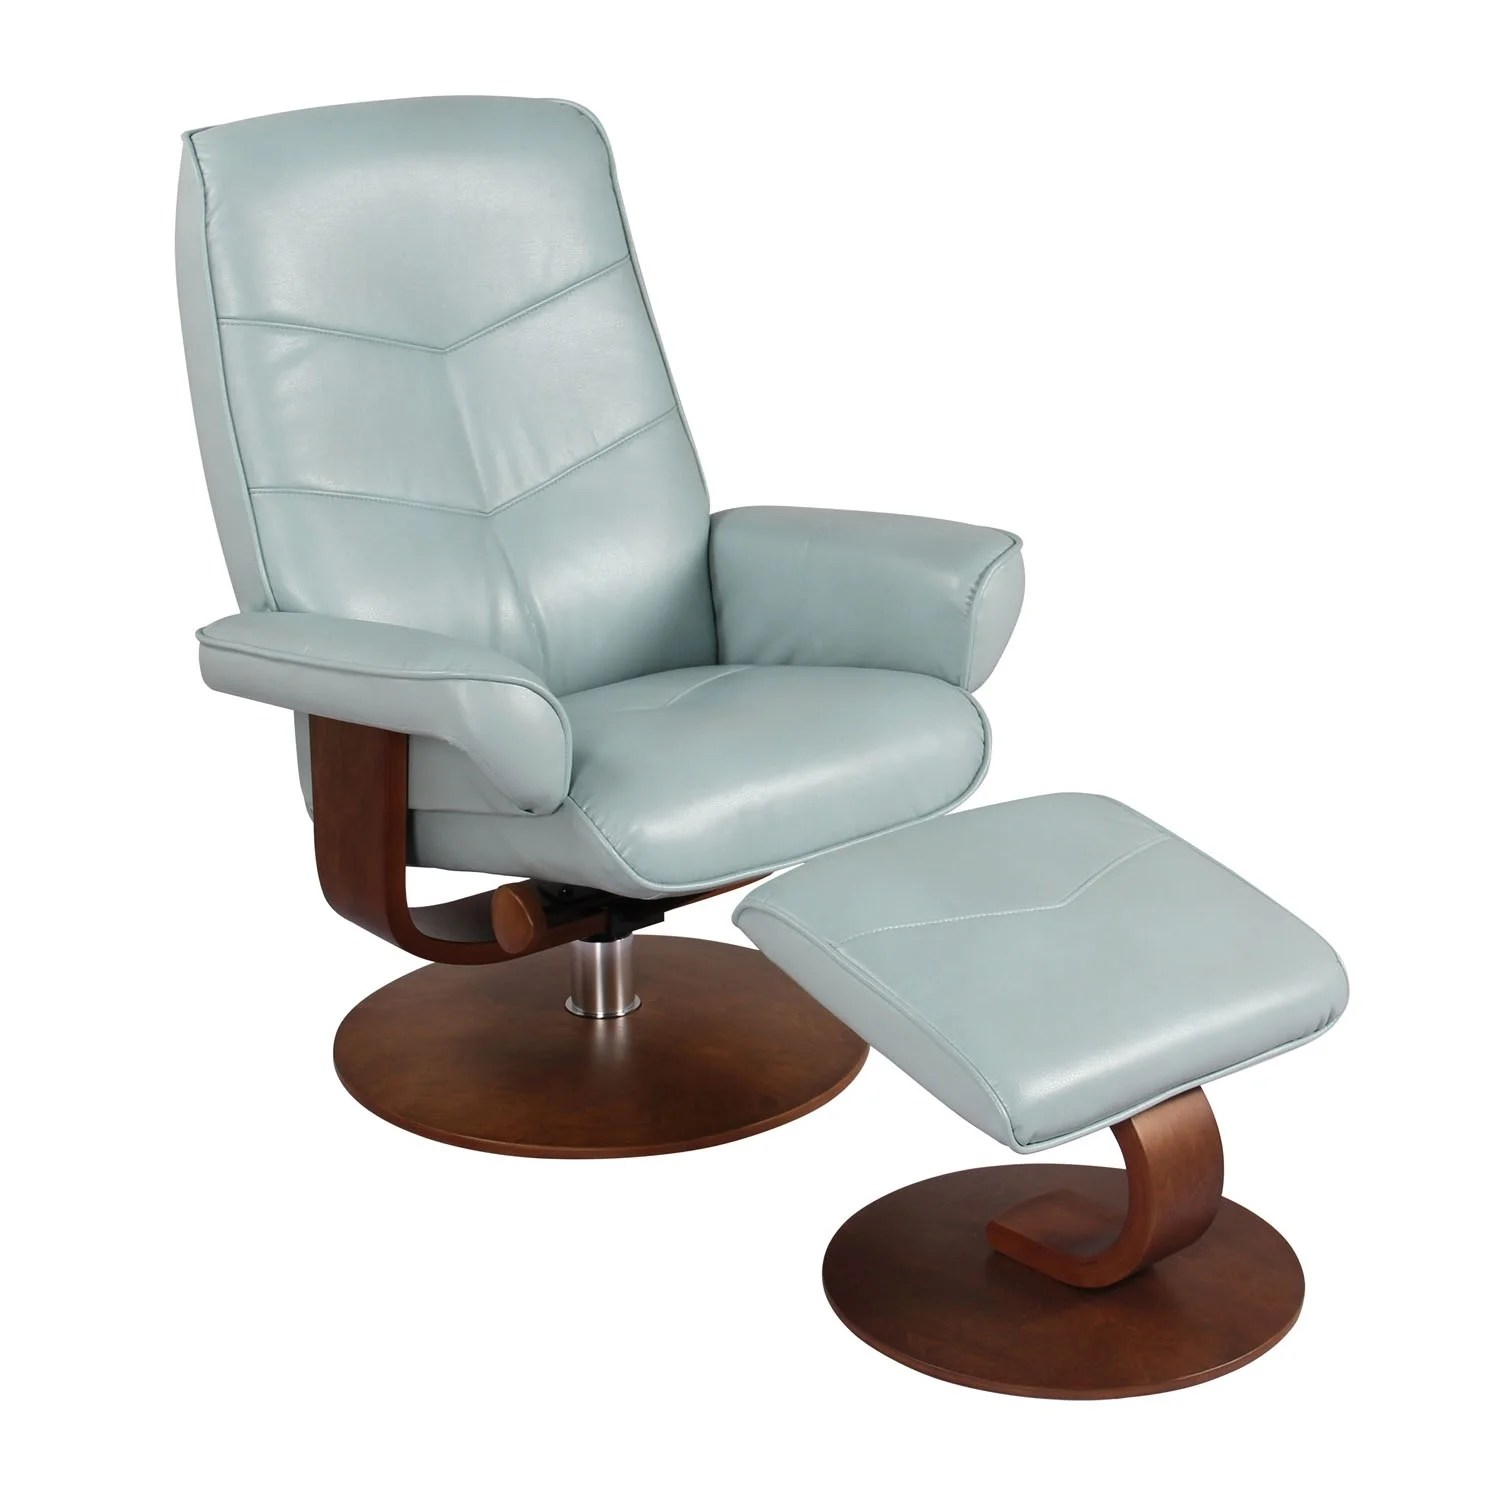 Swivel Recliner Chairs Homeroots Furniture Swivel Recliner Chair And Ottoman Pastel Blue